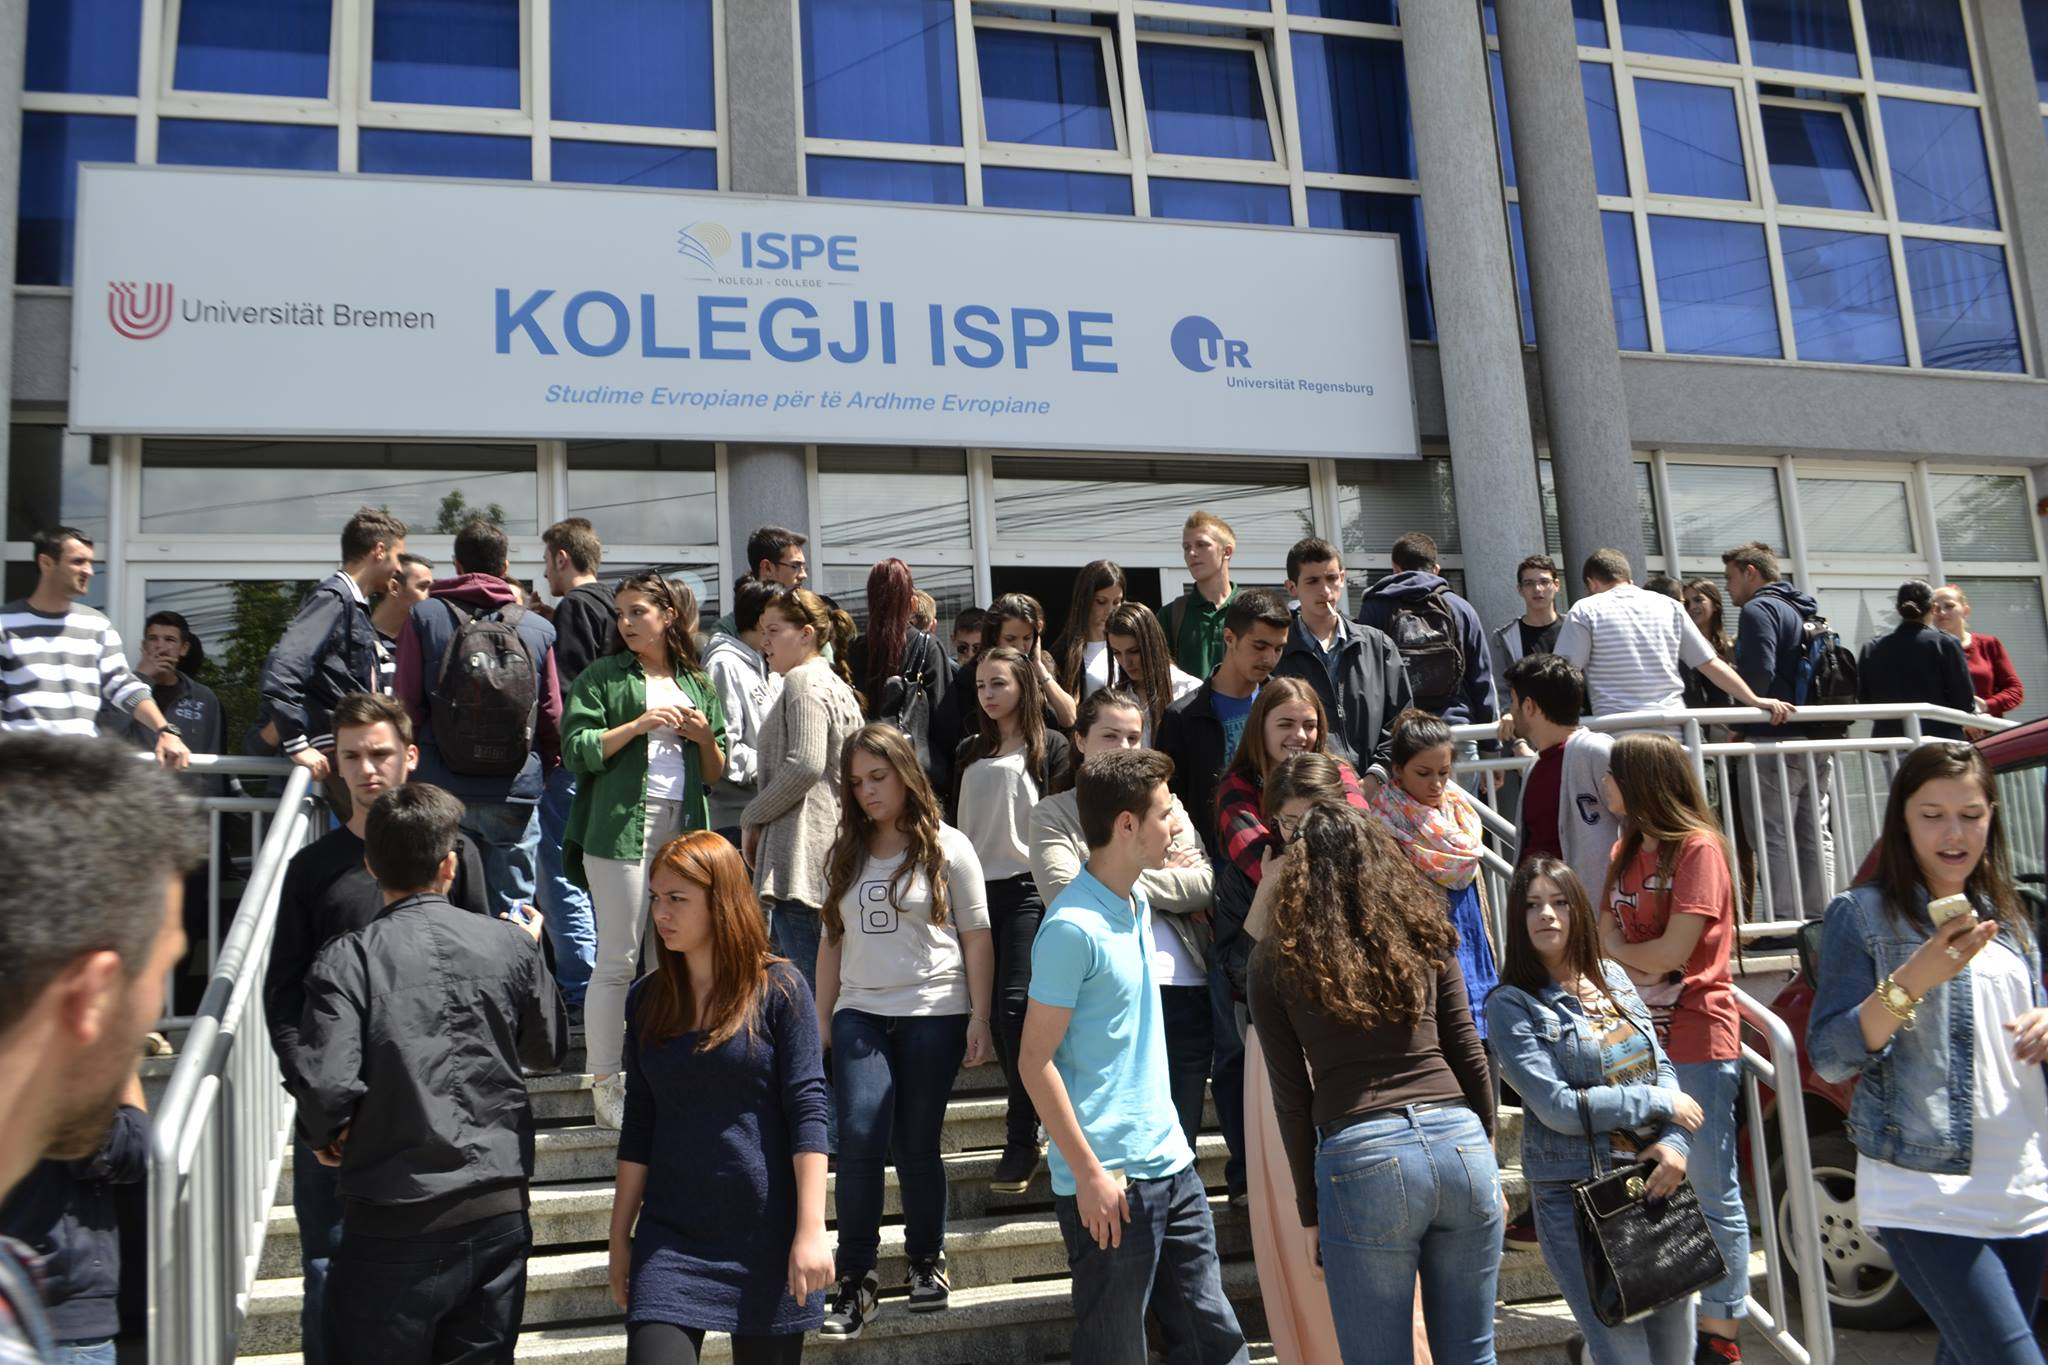 ISPE demands from state leaders in Kosovo to take action against those that did not accredit their programs